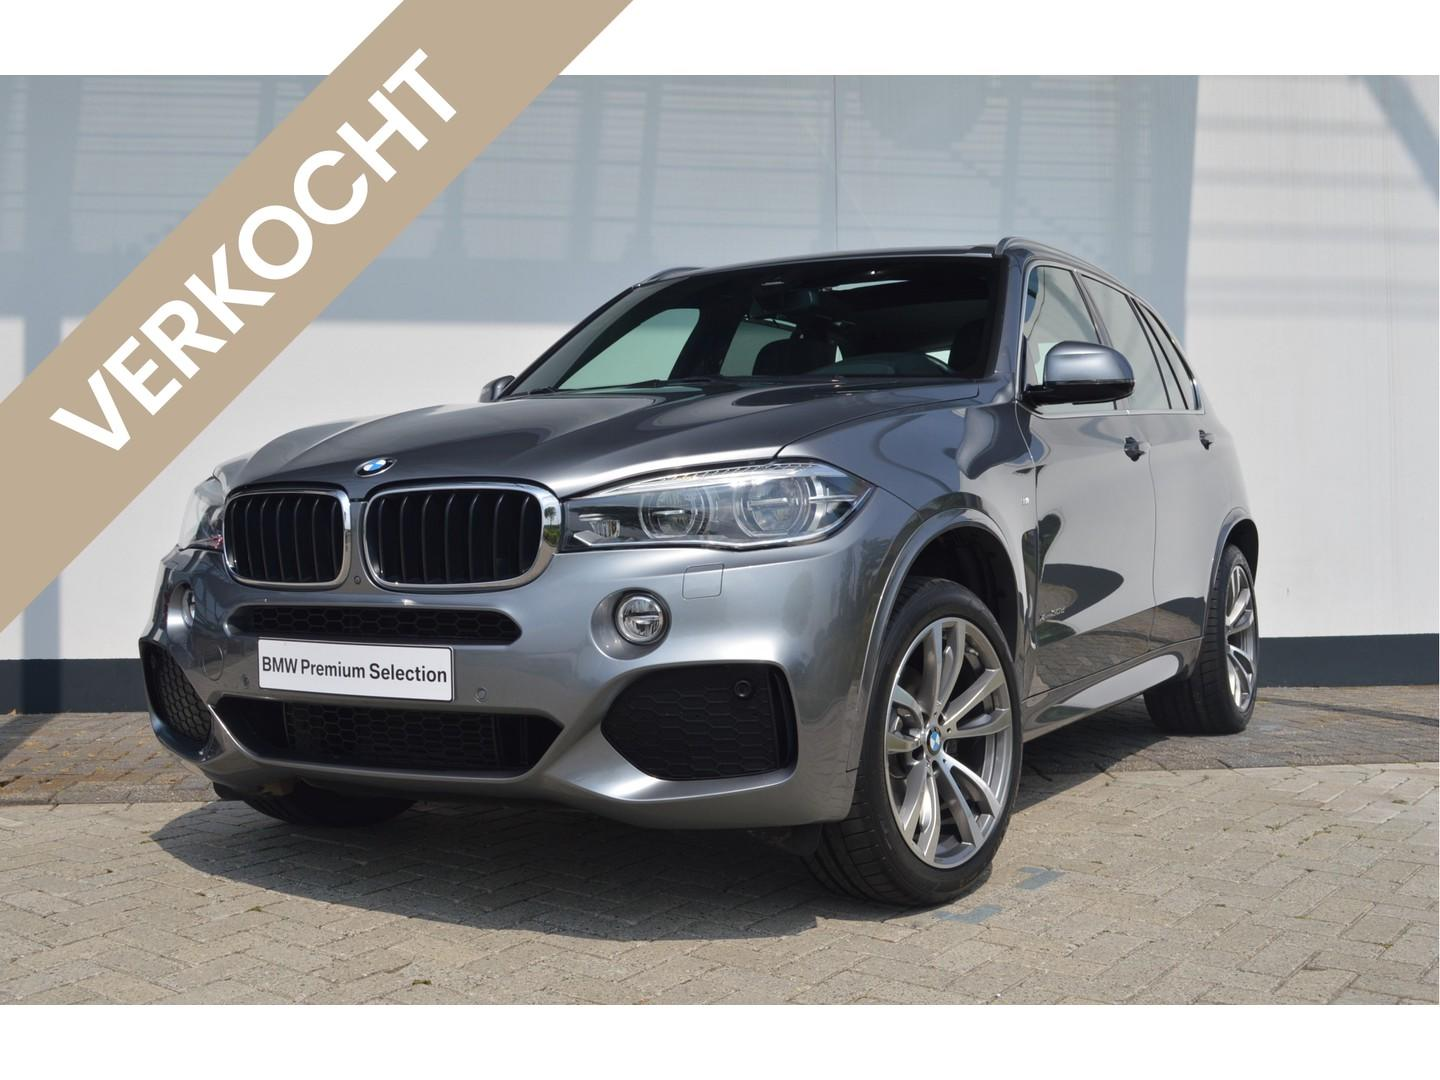 Bmw X5 Xdrive30d high executive m sportpakket aut.